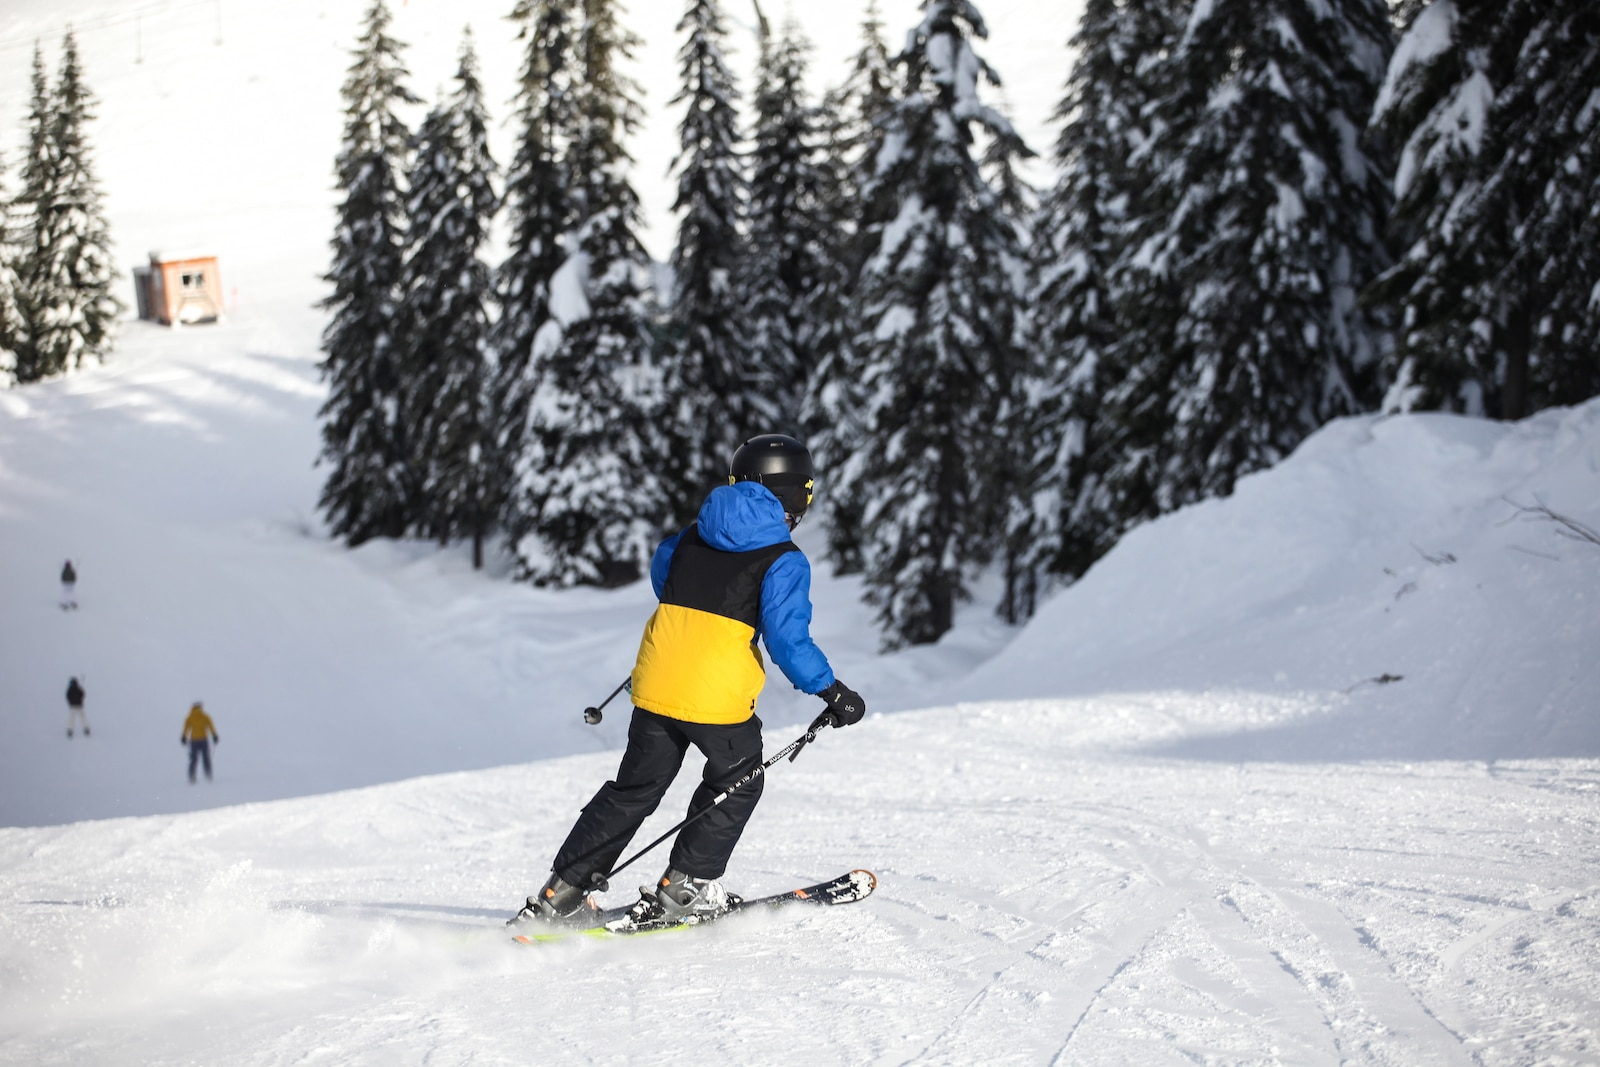 Image of a skier going down the slopes at Stevens Pass in Washington